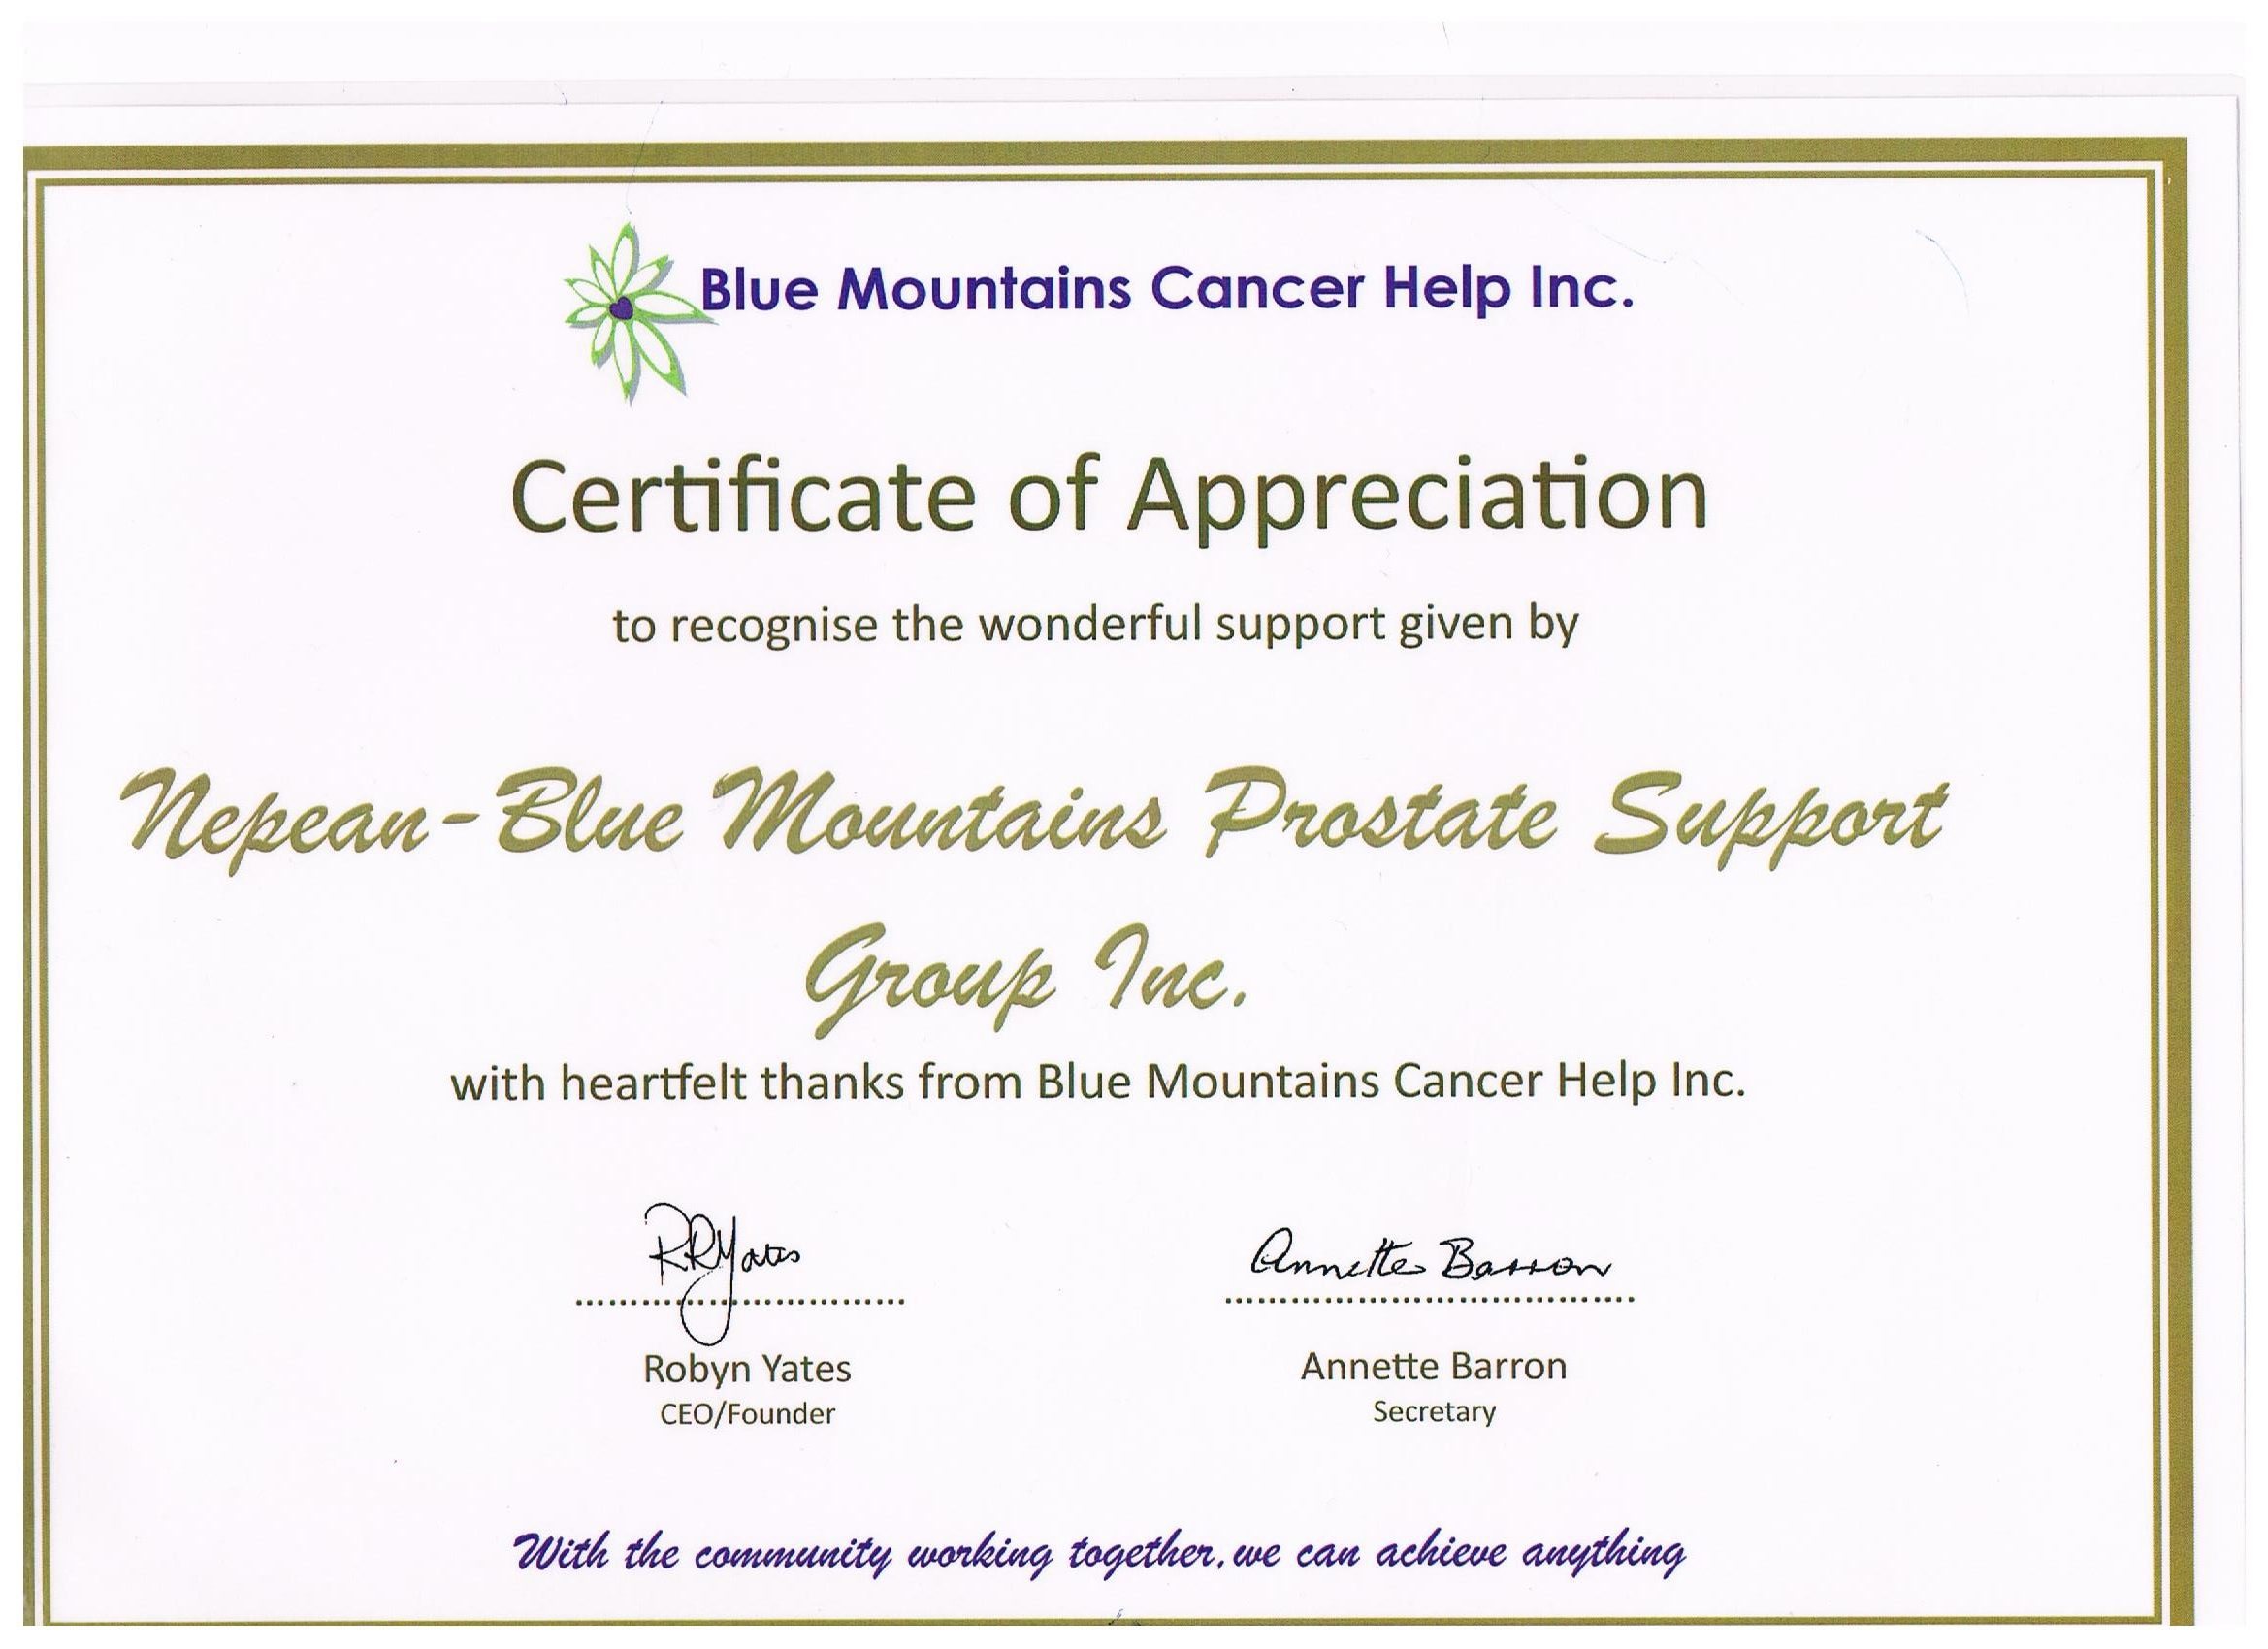 Certificate of appreciation blue mountains cancer help inc certificate of appreciation blue mountains cancer help inc nepean blue mountains prostate cancer support group yelopaper Gallery